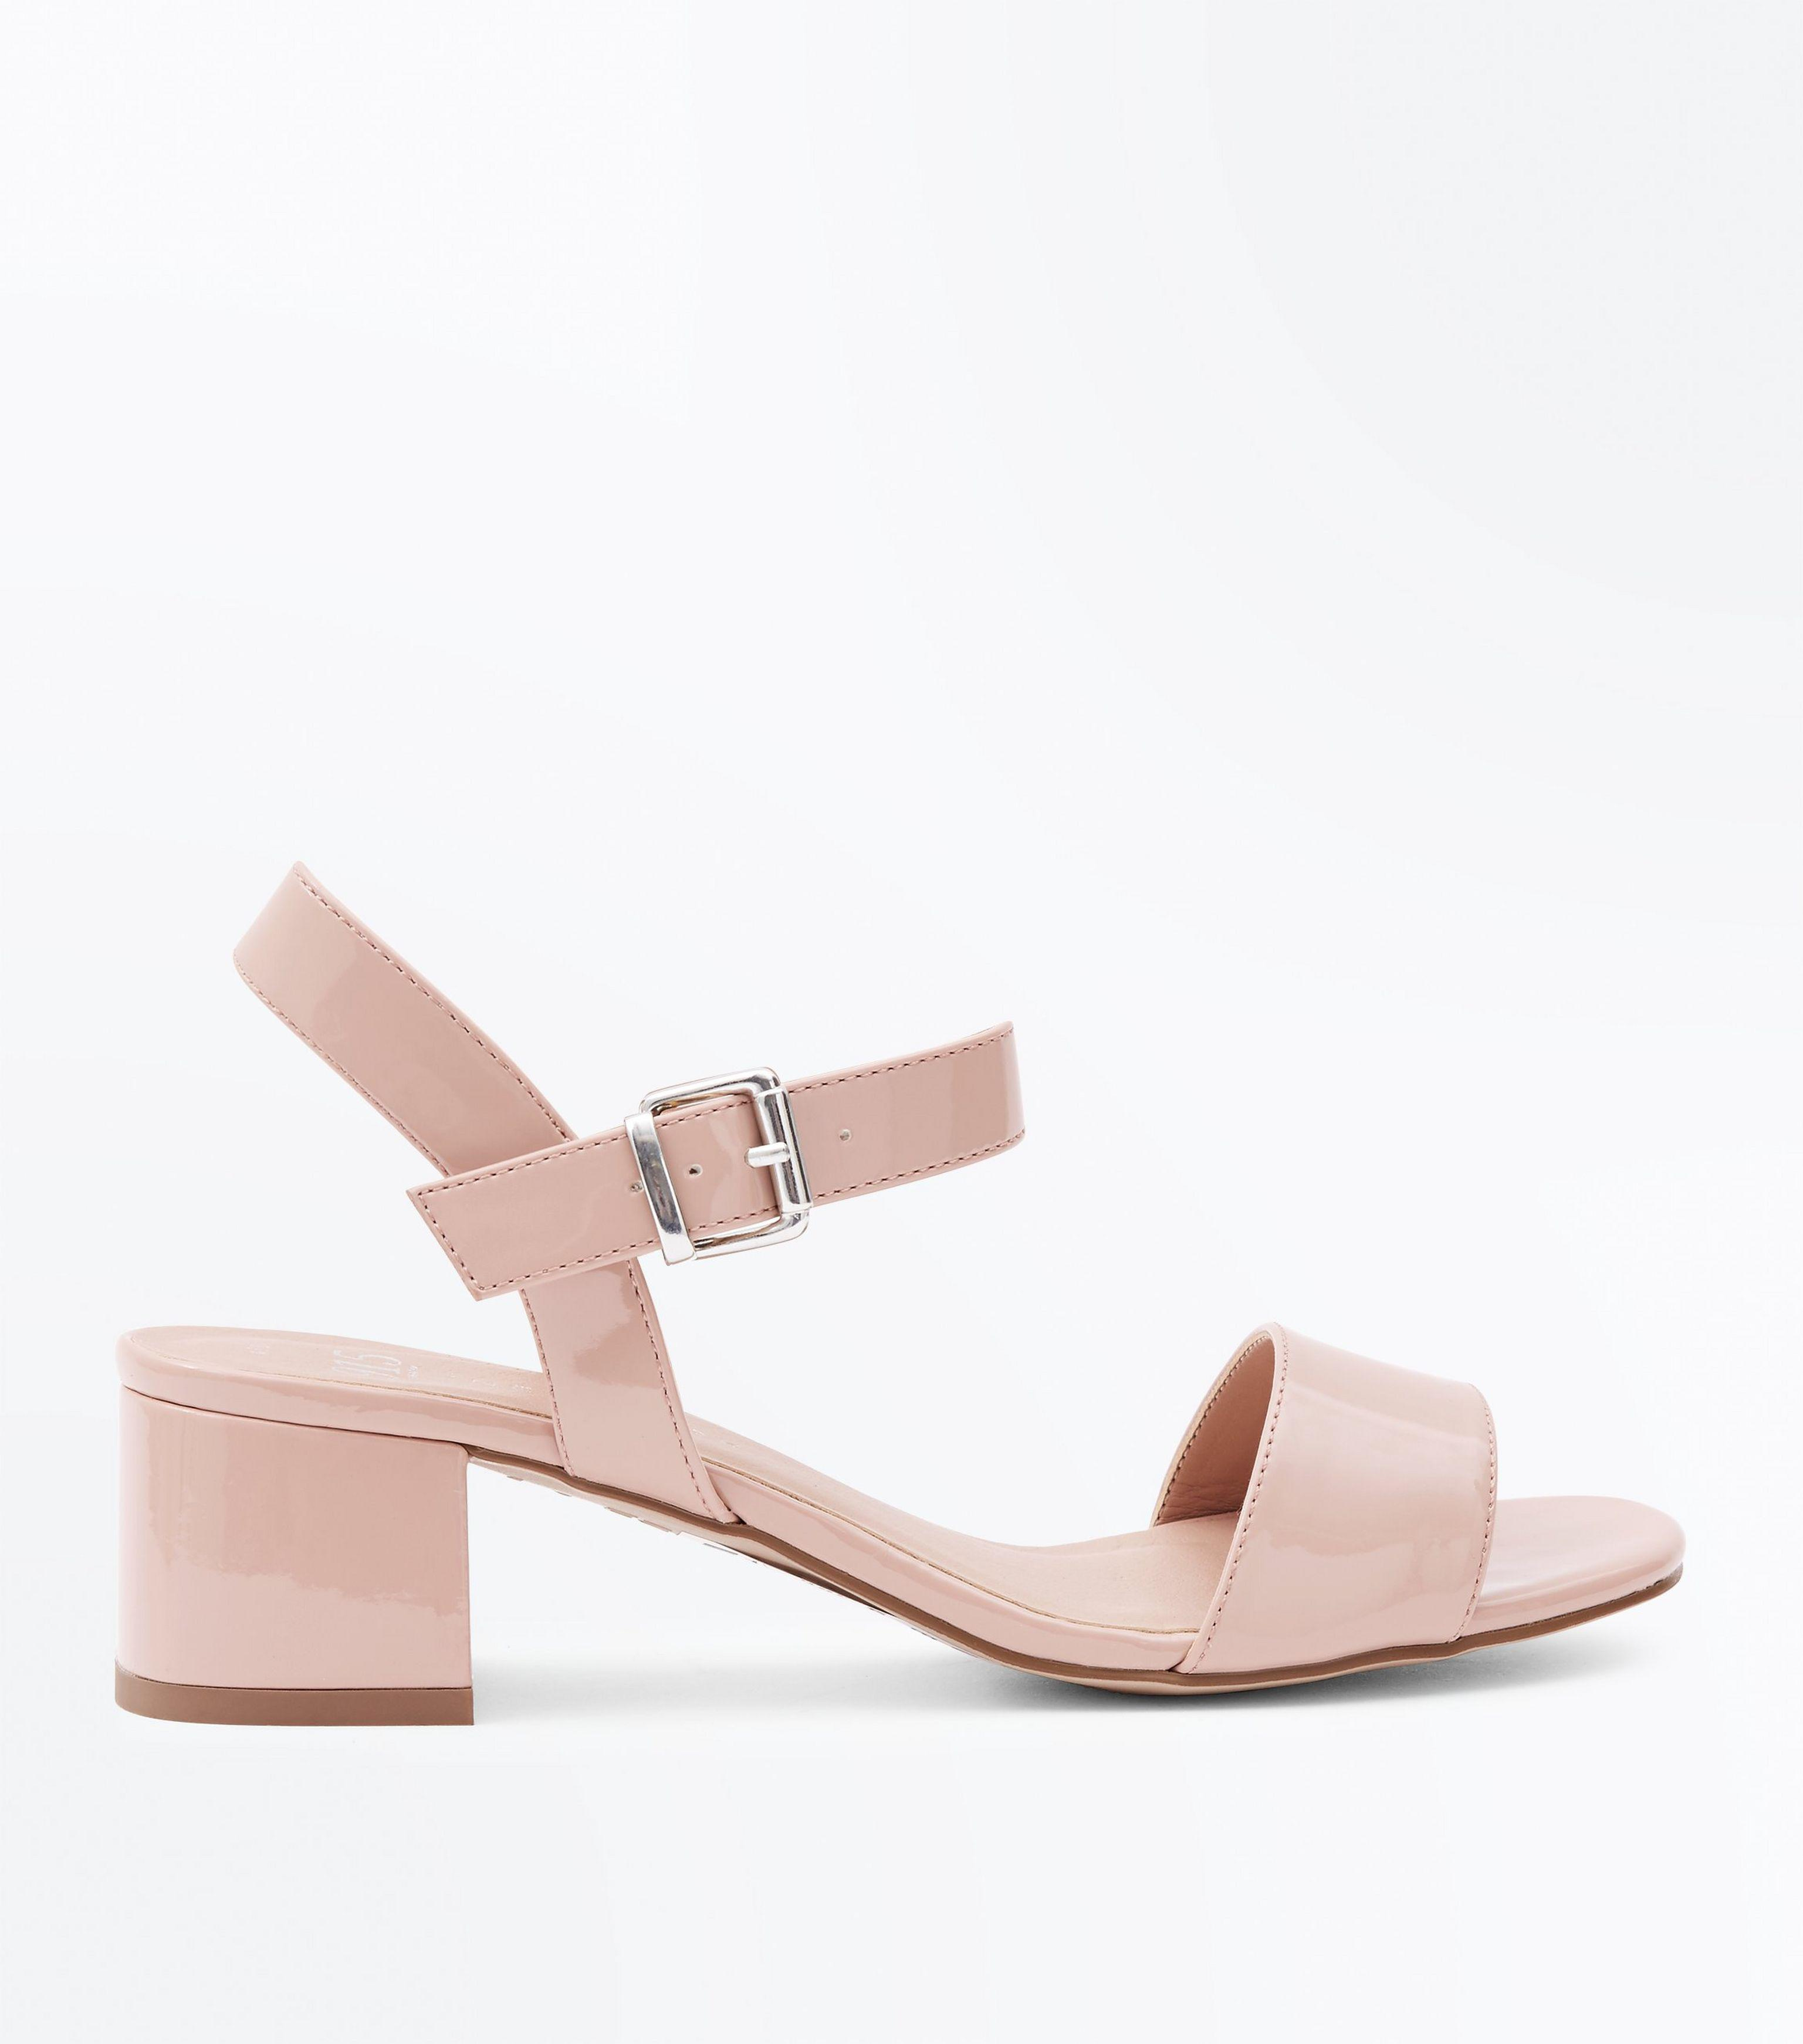 a5265a578f9 New Look Pink Girls Nude Patent Block Heel Sandals